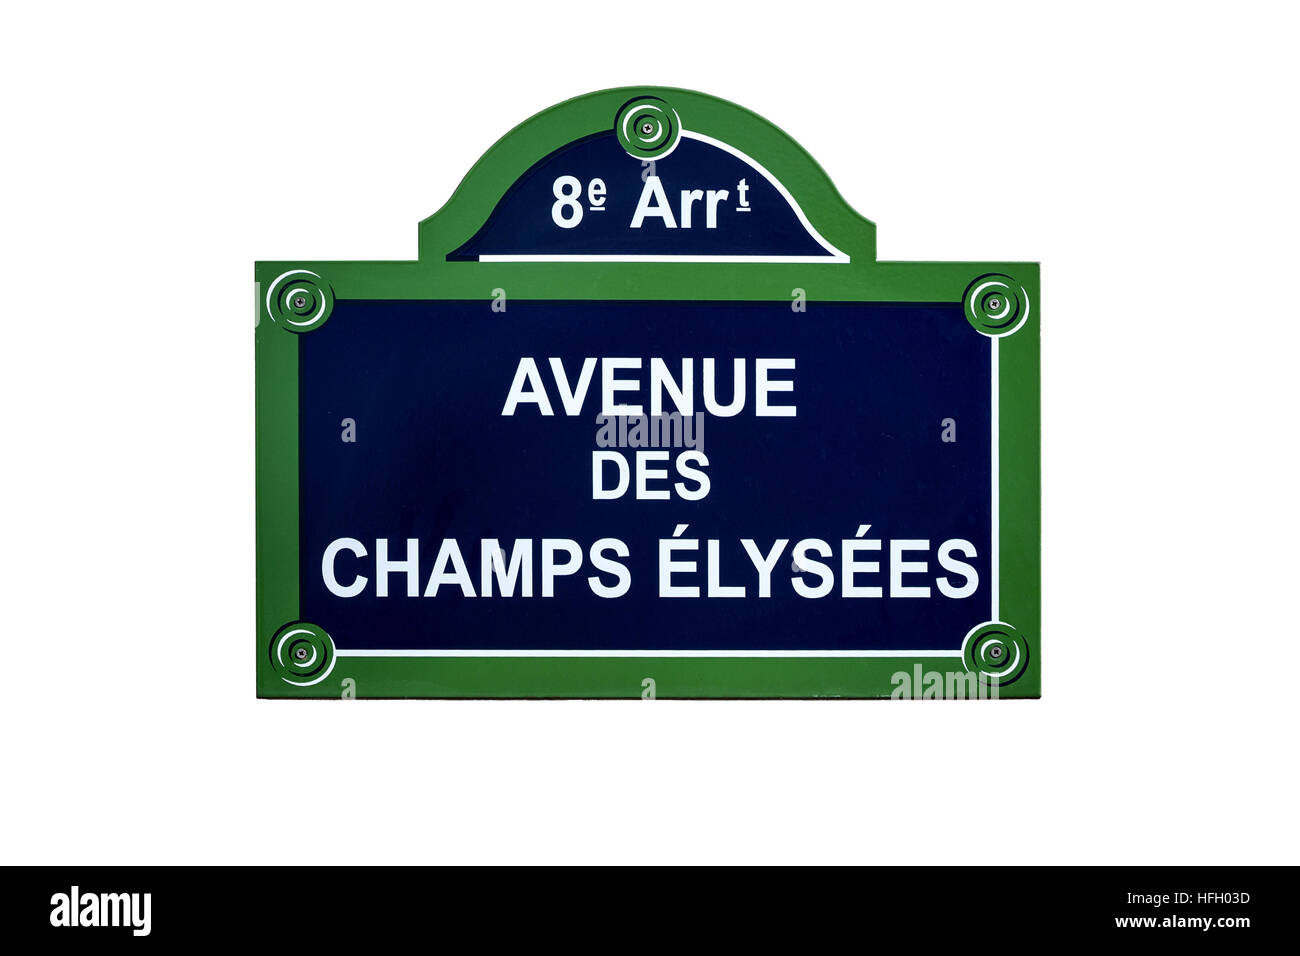 Avenue des Champs Elysees street sign, in the 8th arrondissement of Paris, France. One of the most famous streets - Stock Image